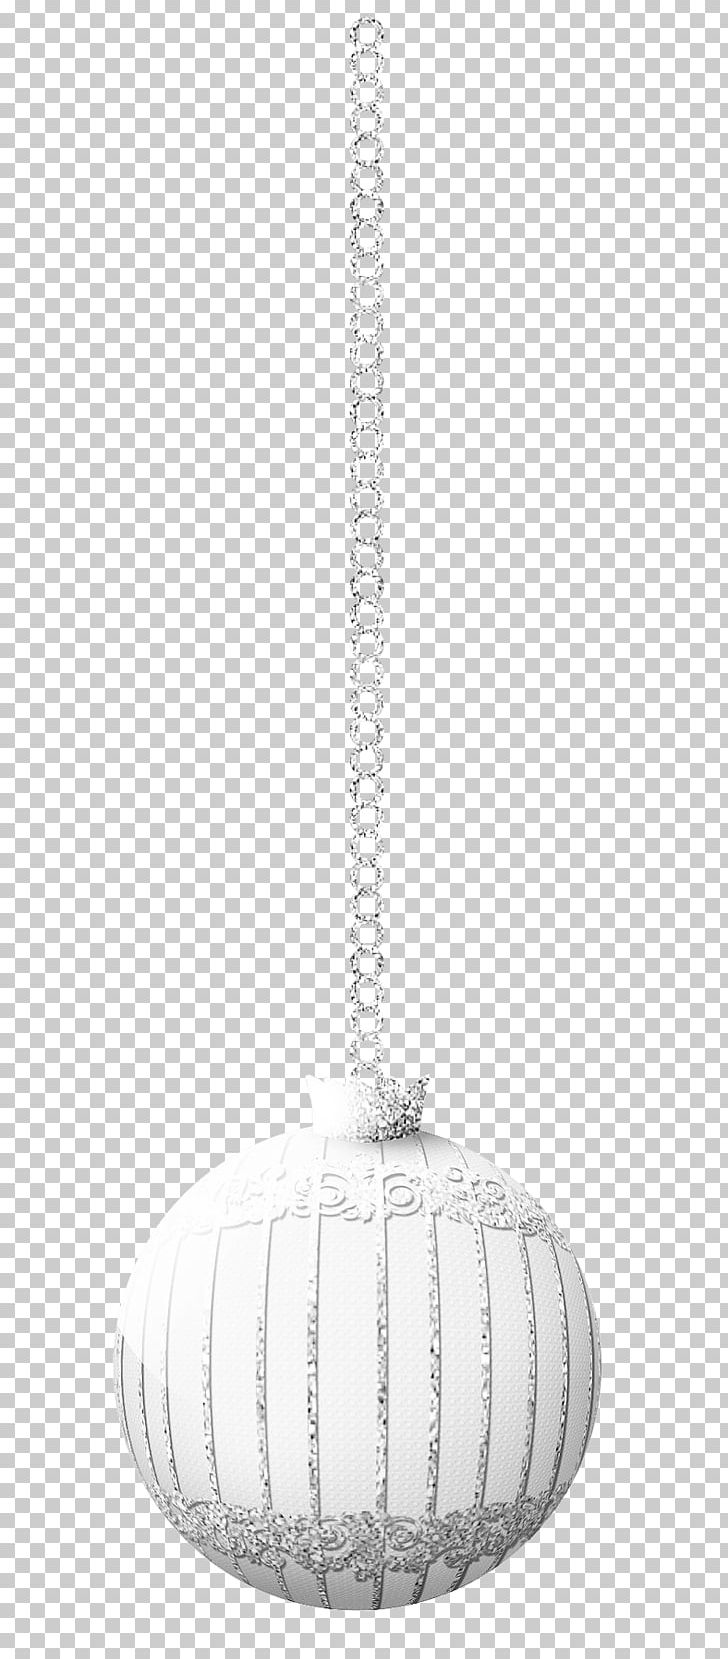 Christmas Chain Clipart.Christmas Icon Png Clipart Black And White Chain Christm